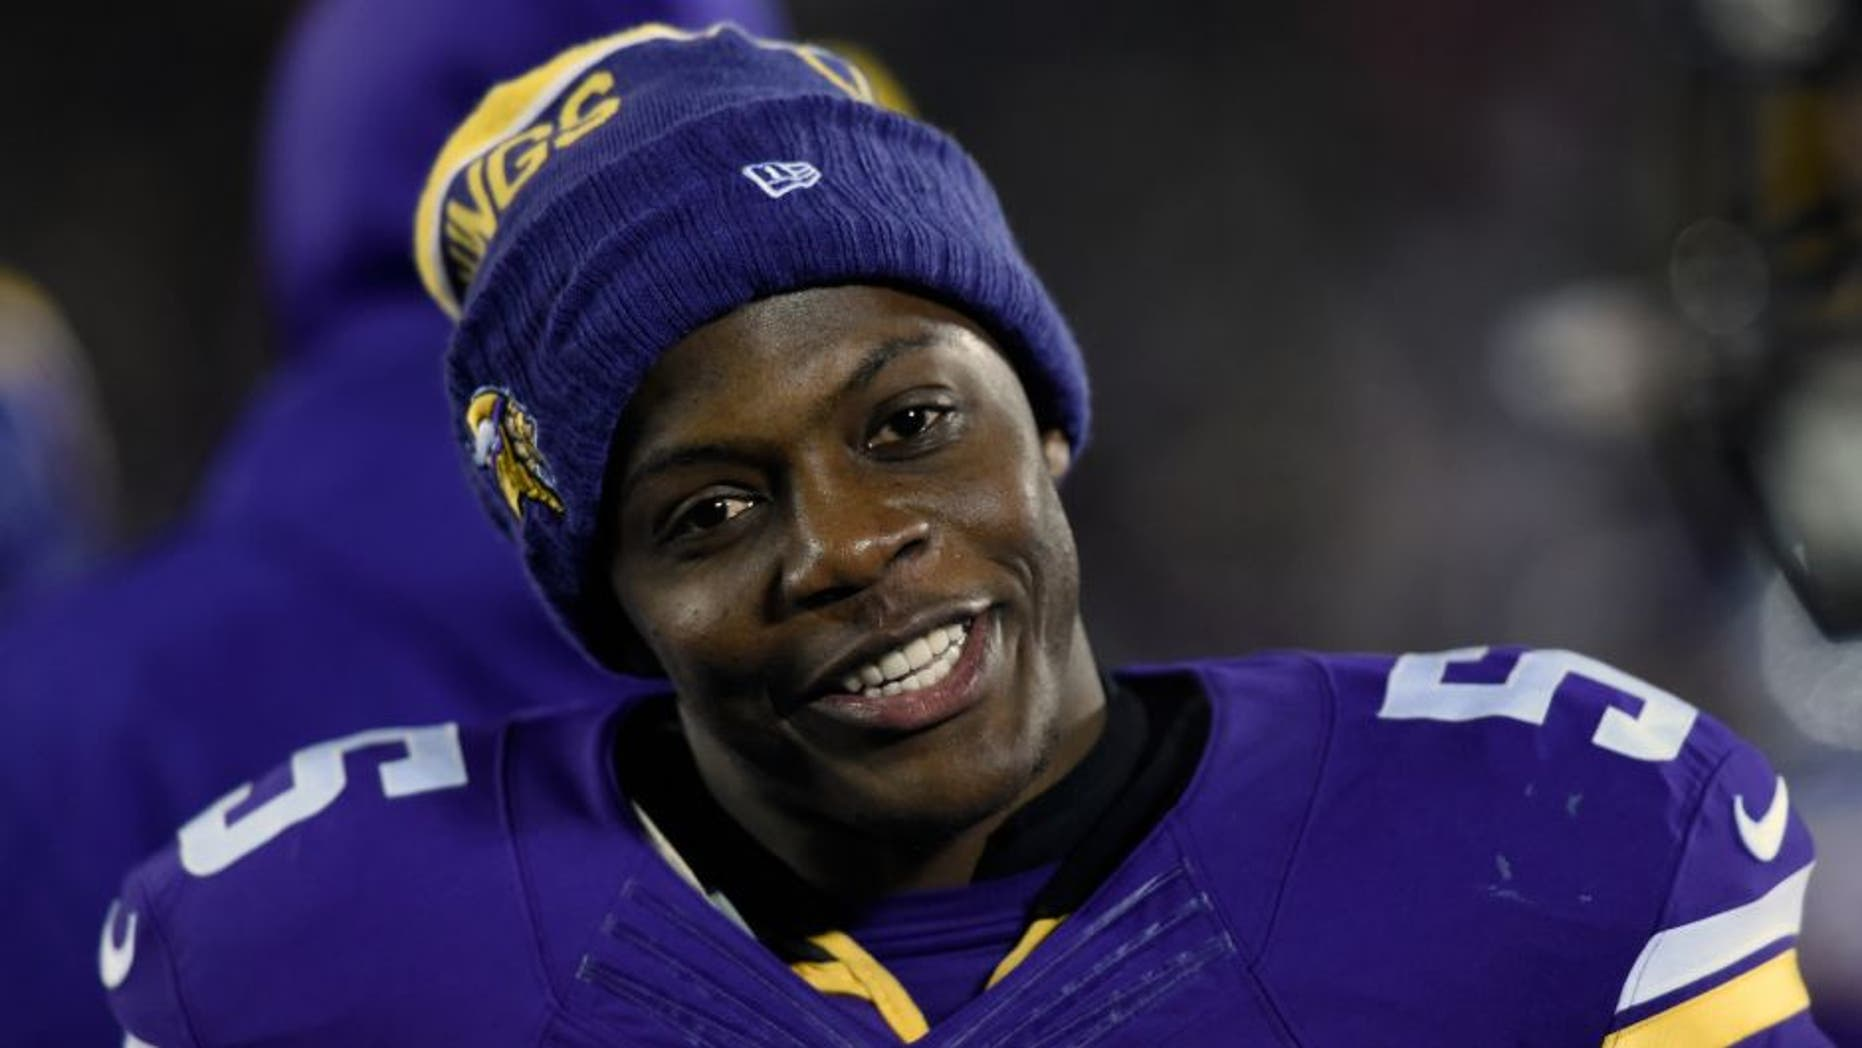 MINNEAPOLIS, MN - DECEMBER 27: Teddy Bridgewater #5 of the Minnesota Vikings looks on during the fourth quarter of the game against the New York Giants on December 27, 2015 at TCF Bank Stadium in Minneapolis, Minnesota. The Vikings defeated the Giants 49-17. (Photo by Hannah Foslien/Getty Images)